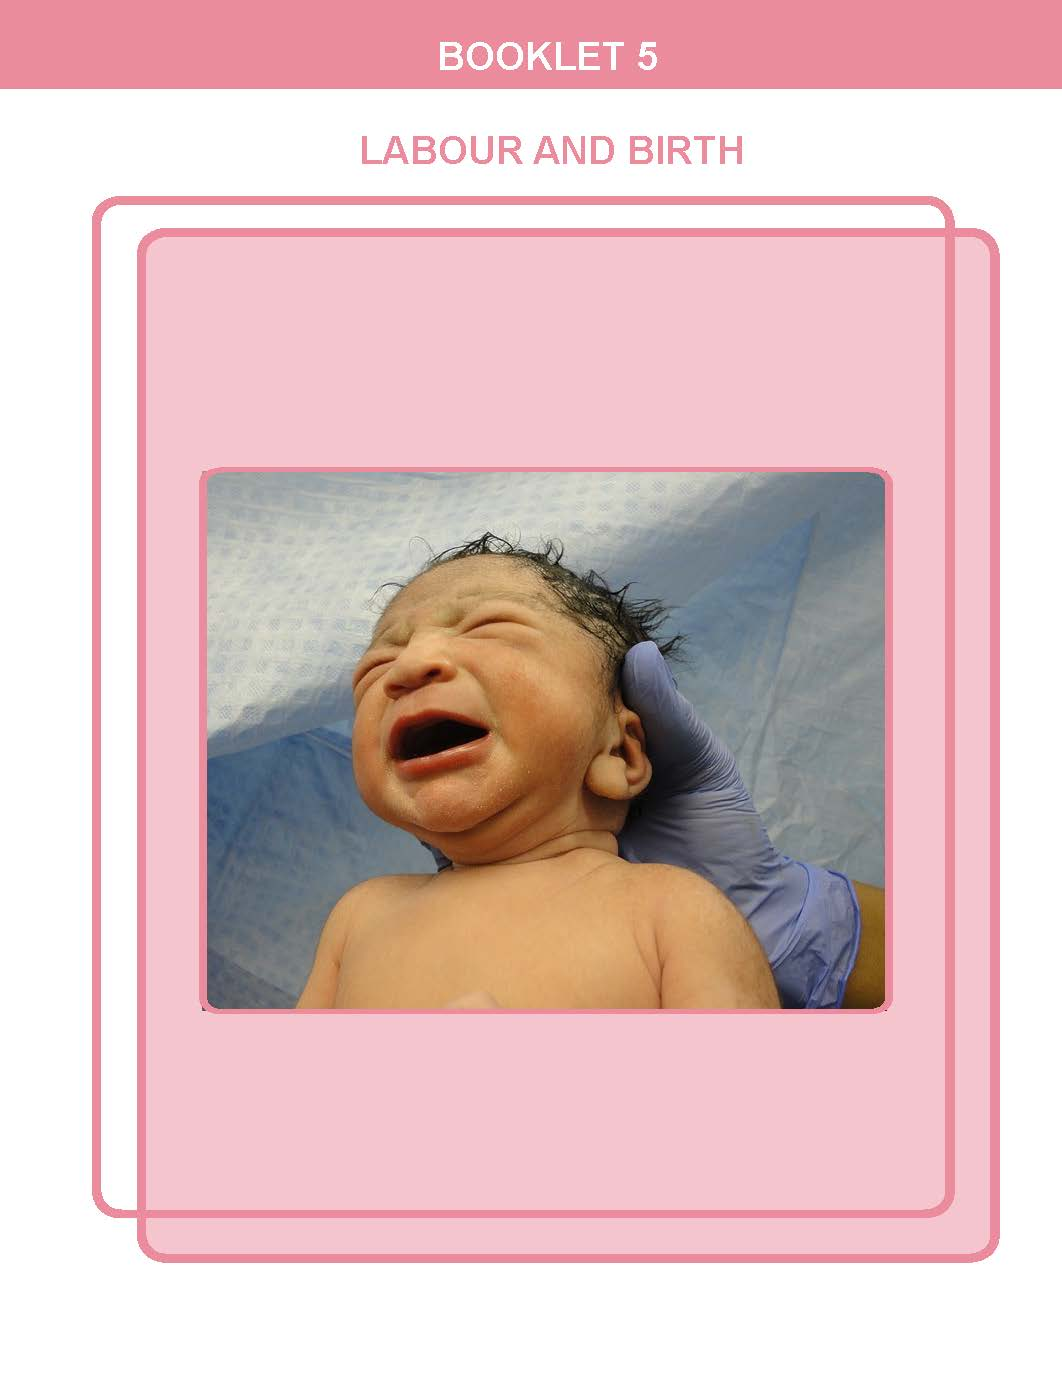 You probably have questions about giving birth. You can read about  labour and birth  in Booklet 5.